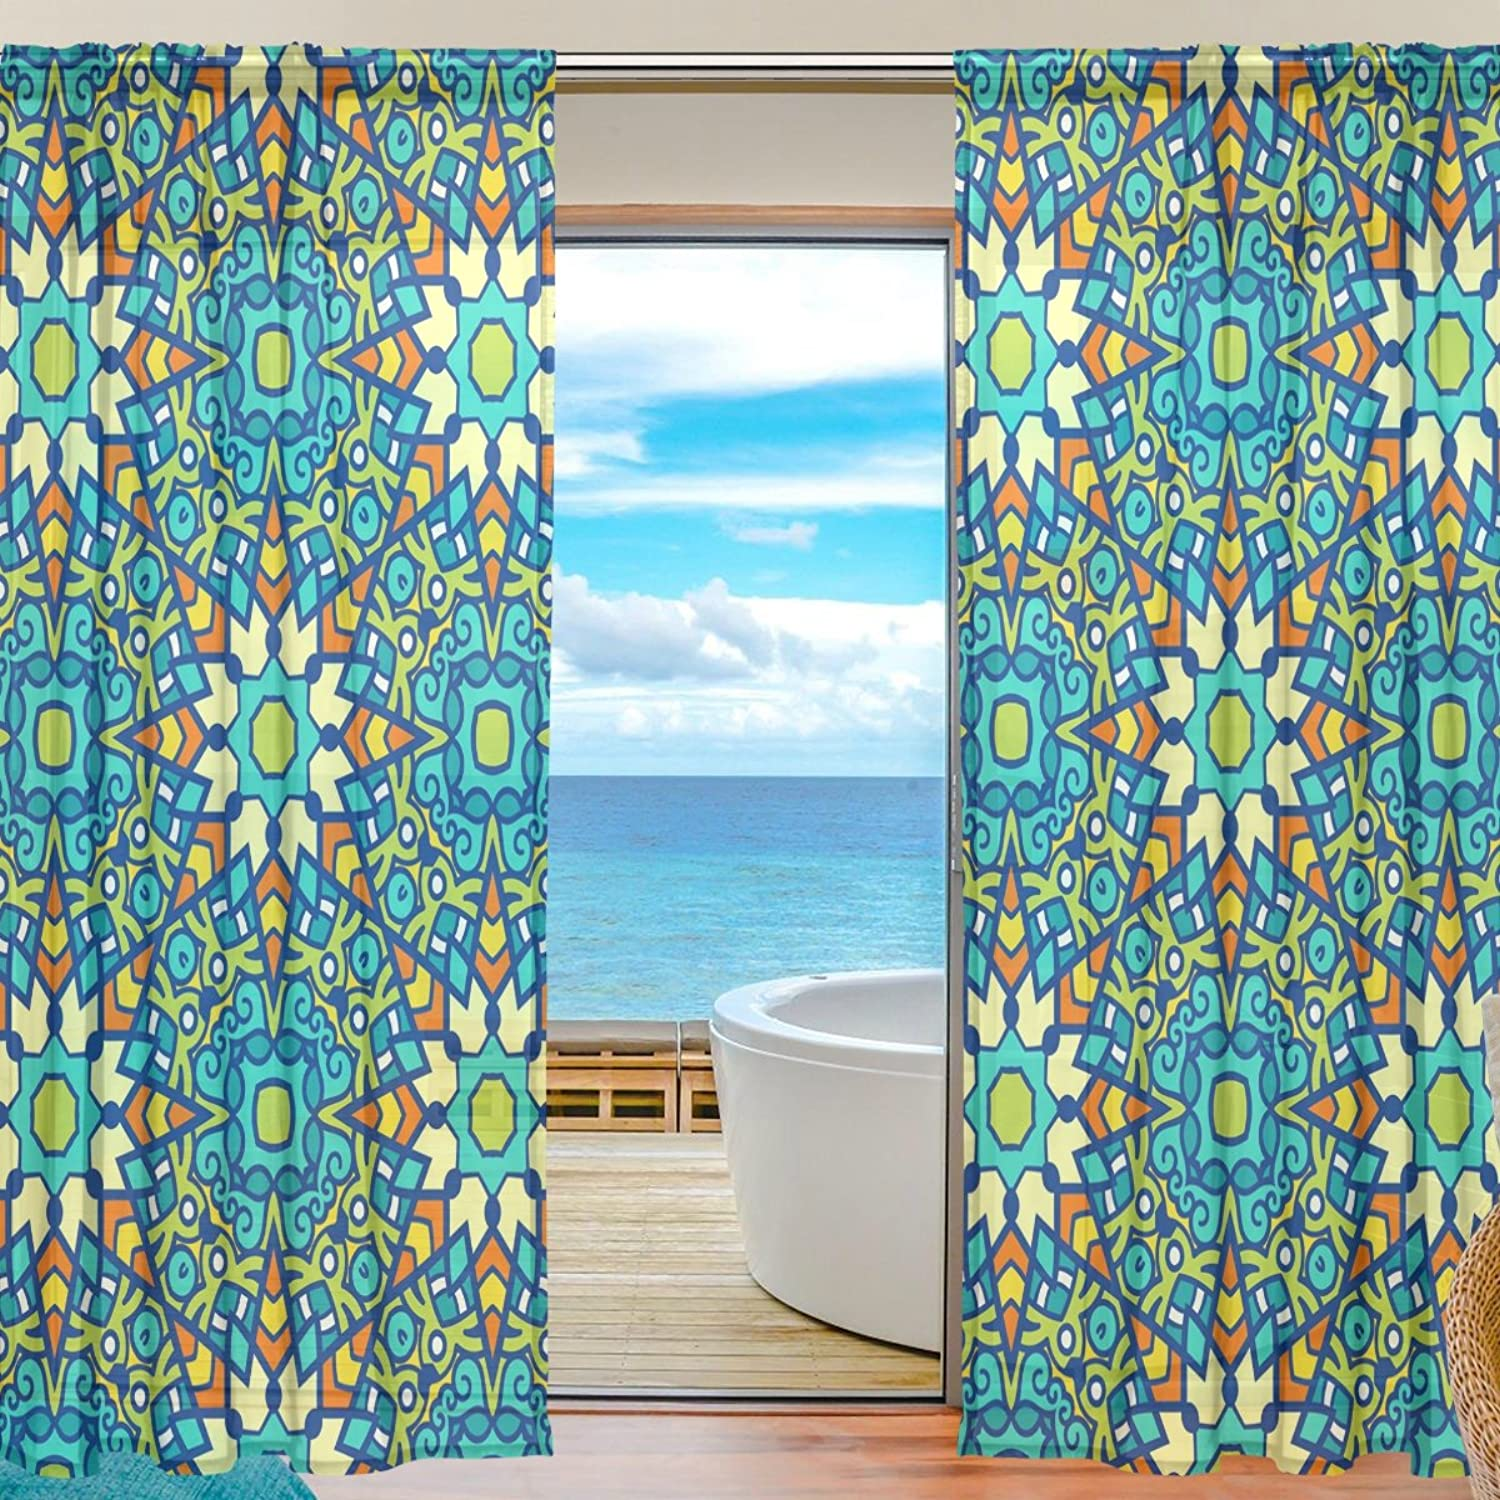 Vantaso Sheer Curtains 78 inch Long Oriental Retro Style Floral for Kids Girls Bedroom Living Room Window Decorative 2 Panels